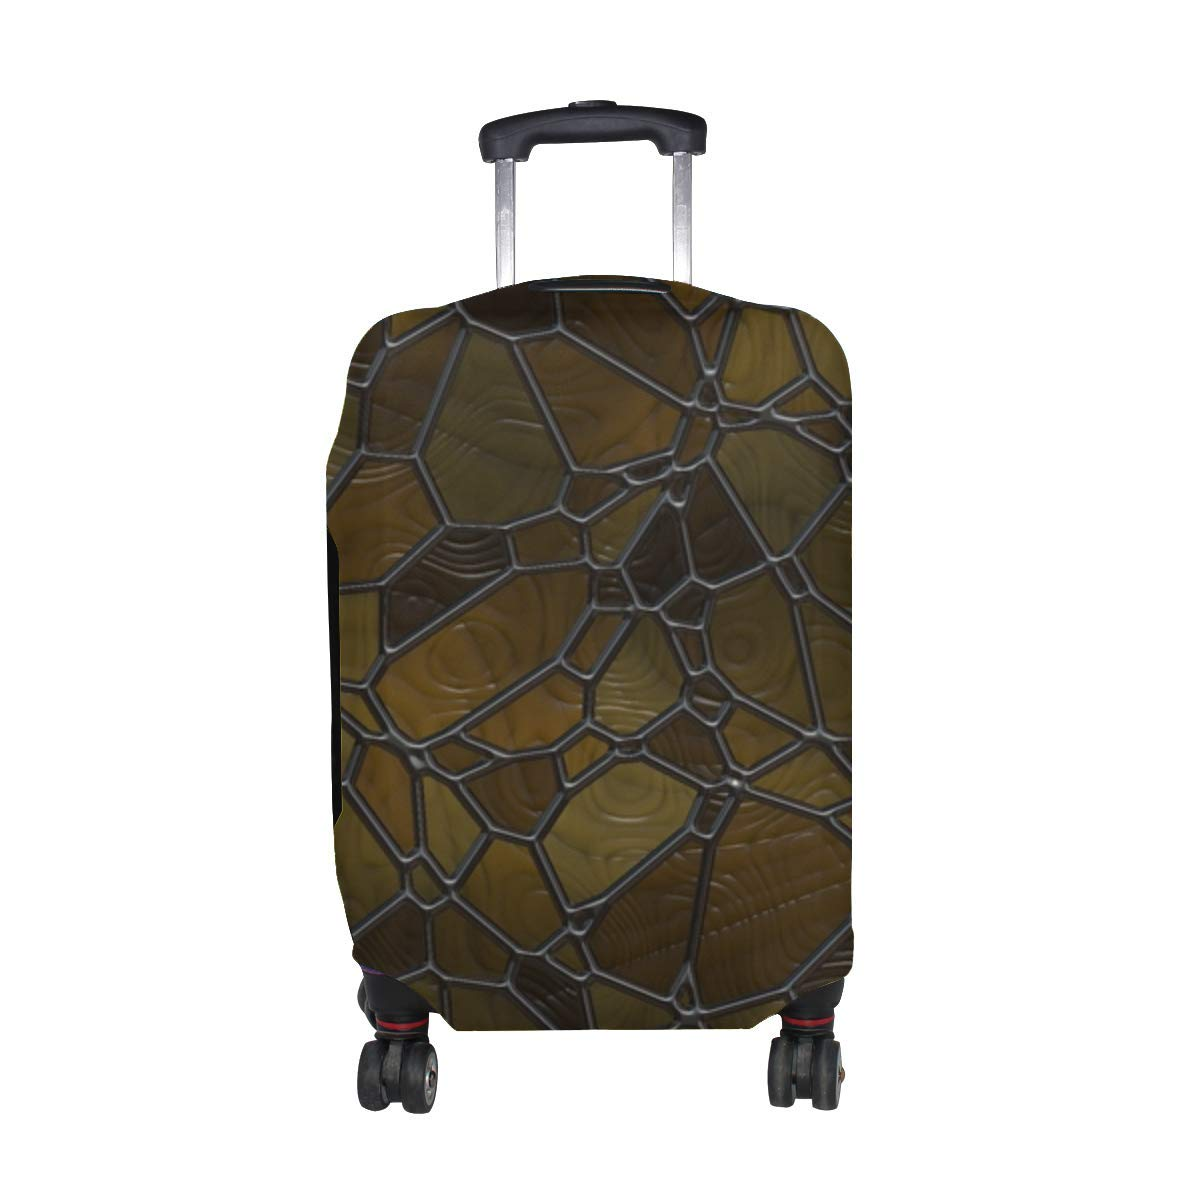 Mosaic Glass Surface Pattern Print Travel Luggage Protector Baggage Suitcase Cover Fits 18-21 Inch Luggage by ANT88-LUGGAGE